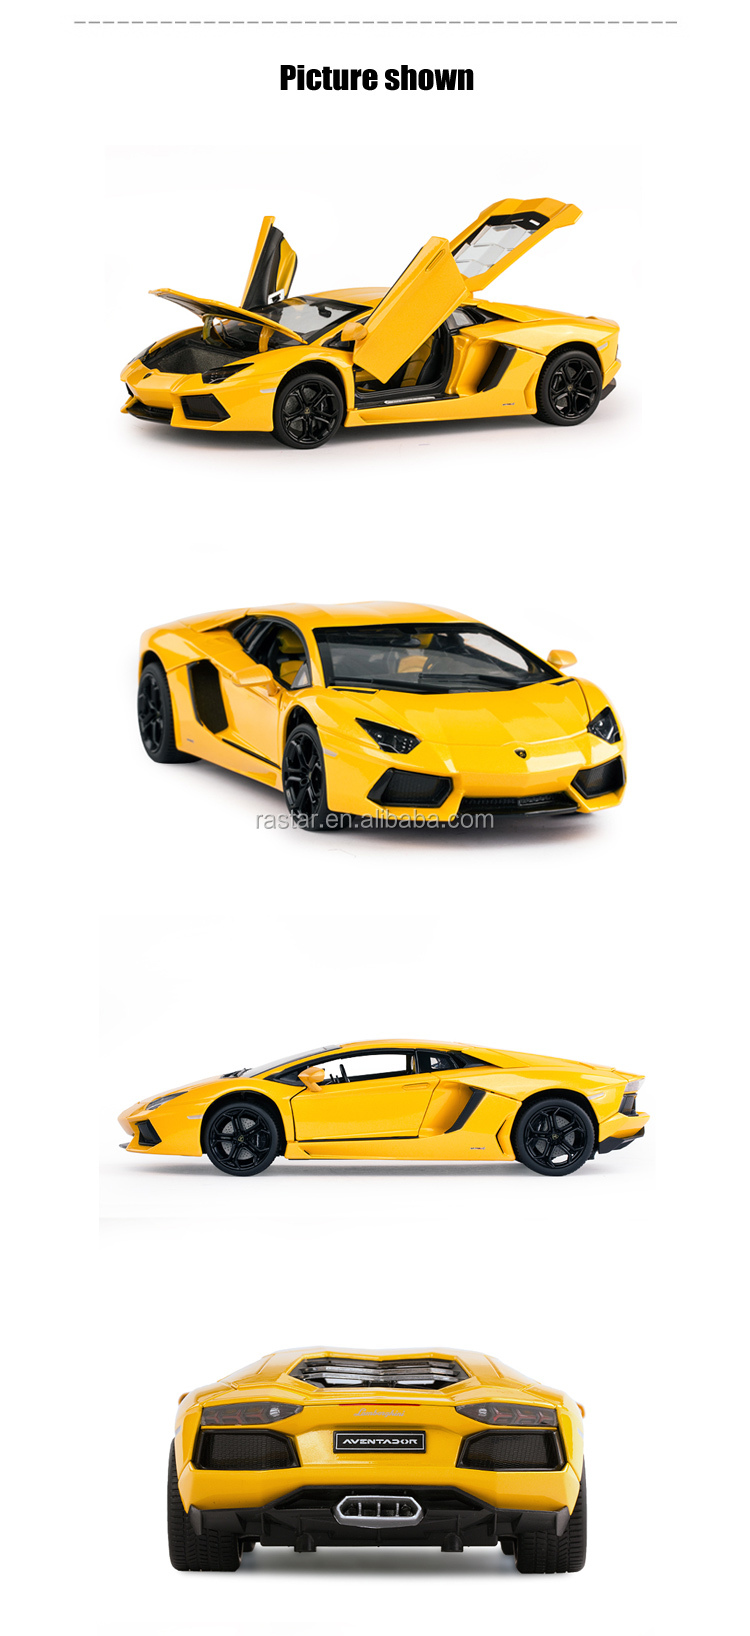 Rastar new products 1:18 scale kids toy die cast model car